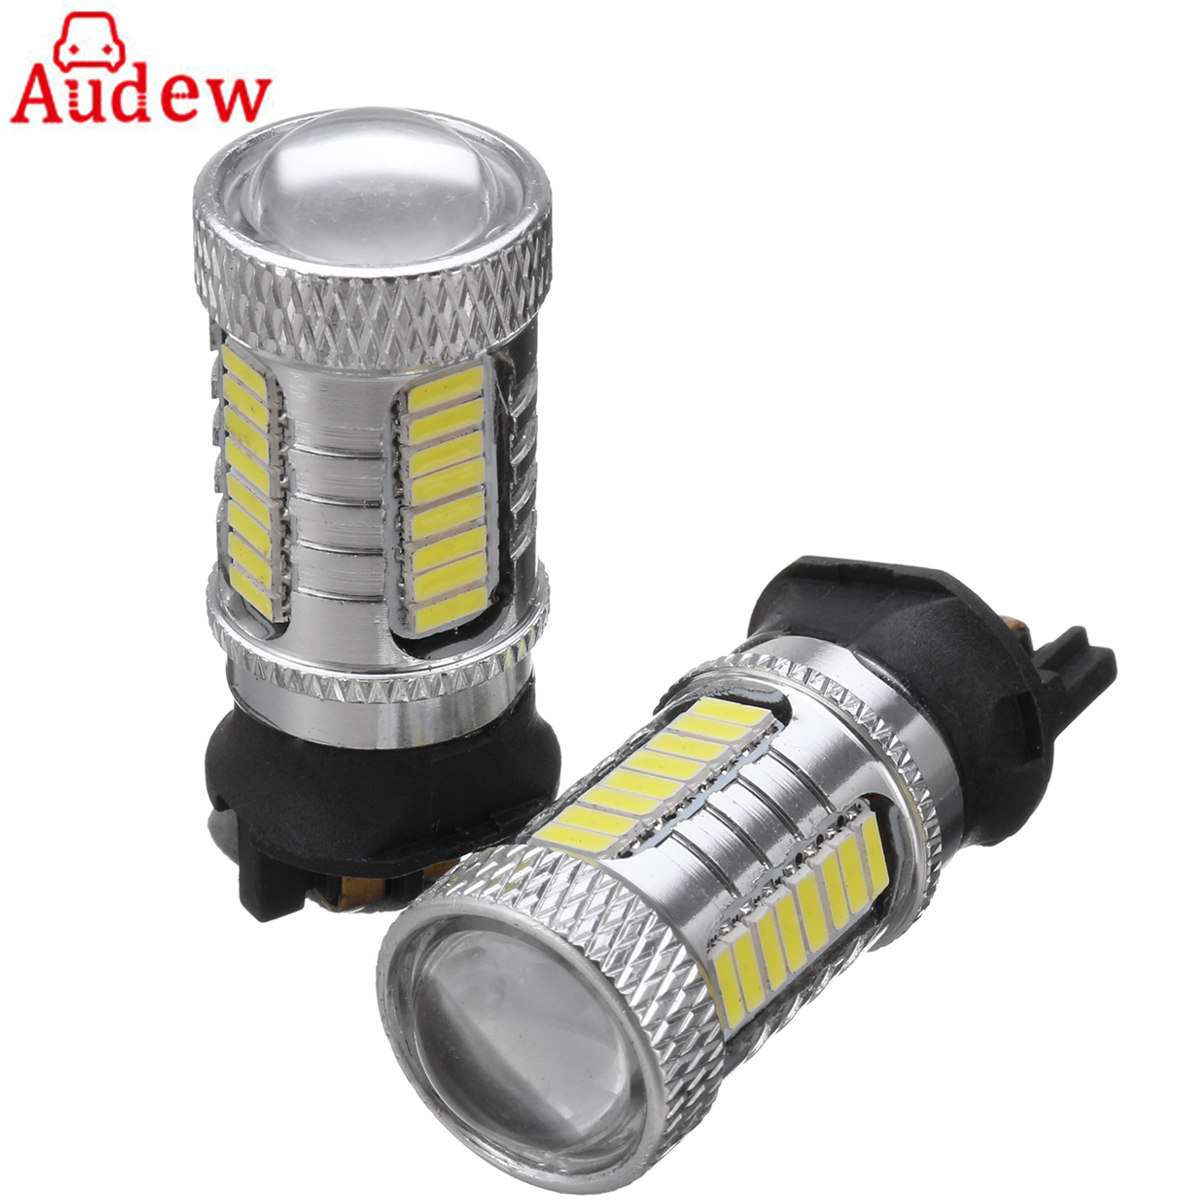 1Pair PWY24W White Car Light Daytime Running Lights LED Lamp Bulbs Fog Light DRL PW24W  For BMW F30 F31 CC джемпер sweewe sweewe sw007ewxax62